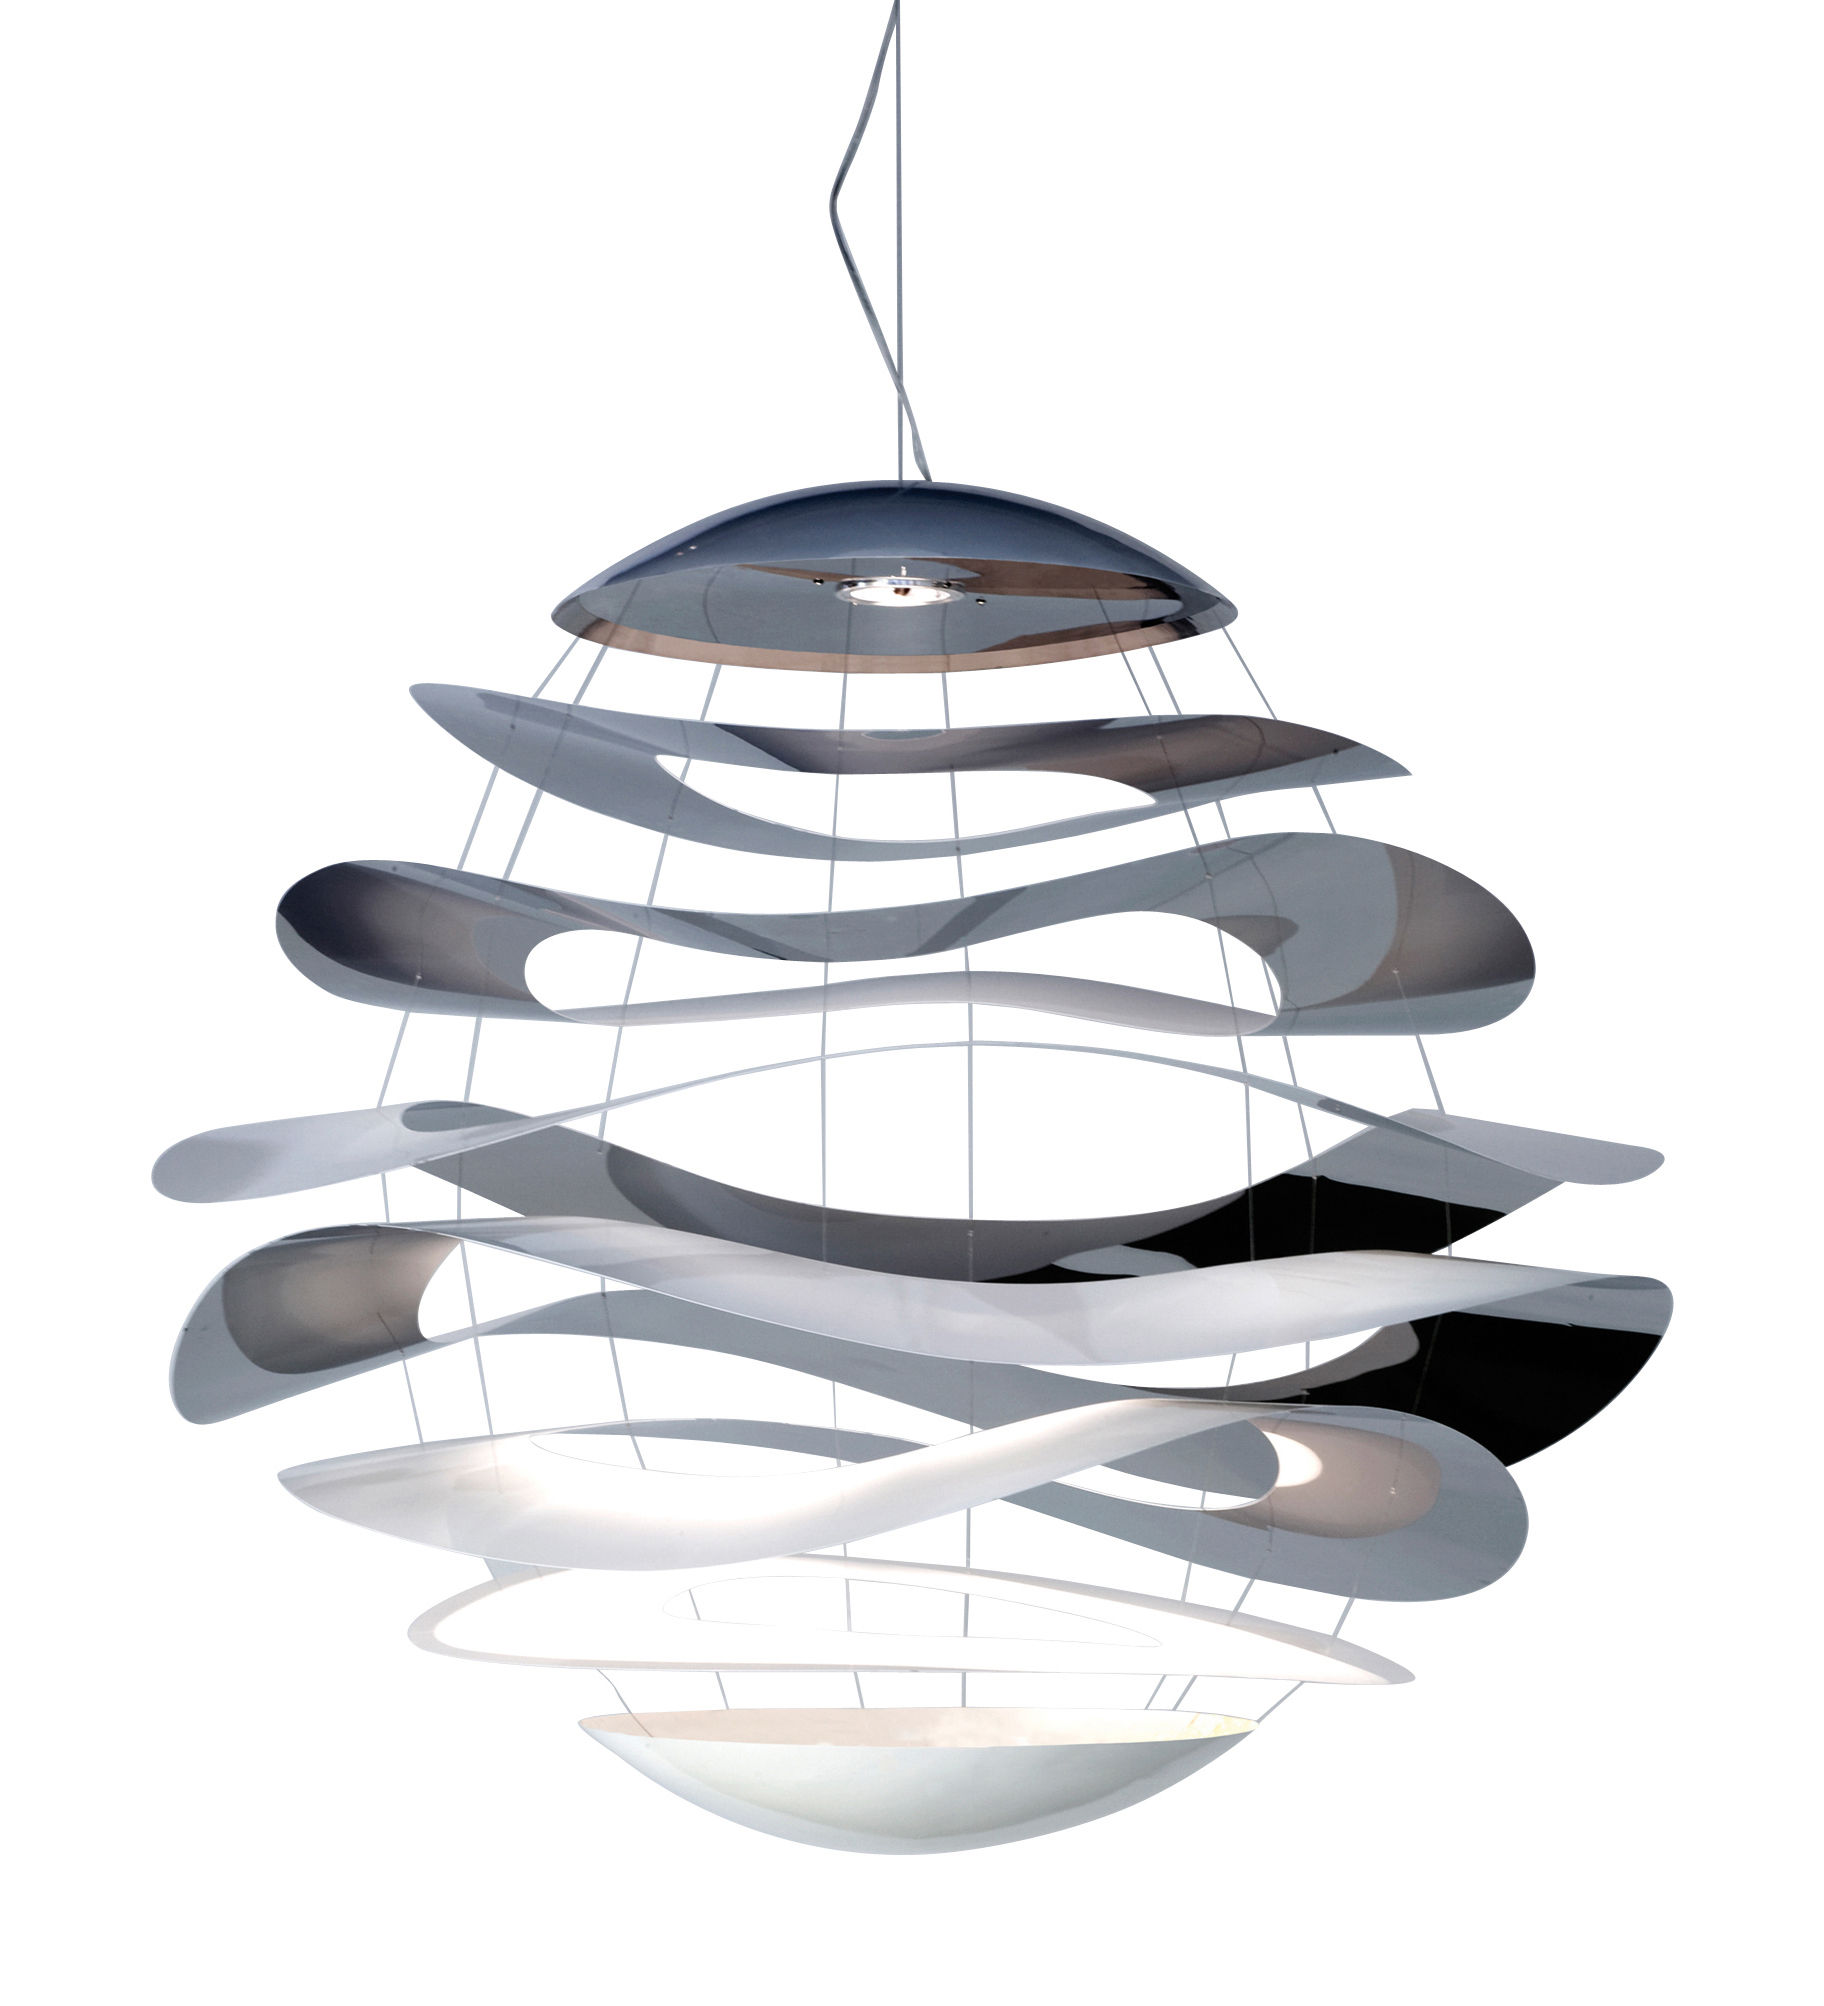 Lighting - Pendant Lighting - Buckle Small Pendant - LED  Ø 70 cm by Innermost - Ø 70 cm - Polished stainless steel & White - Painted steel